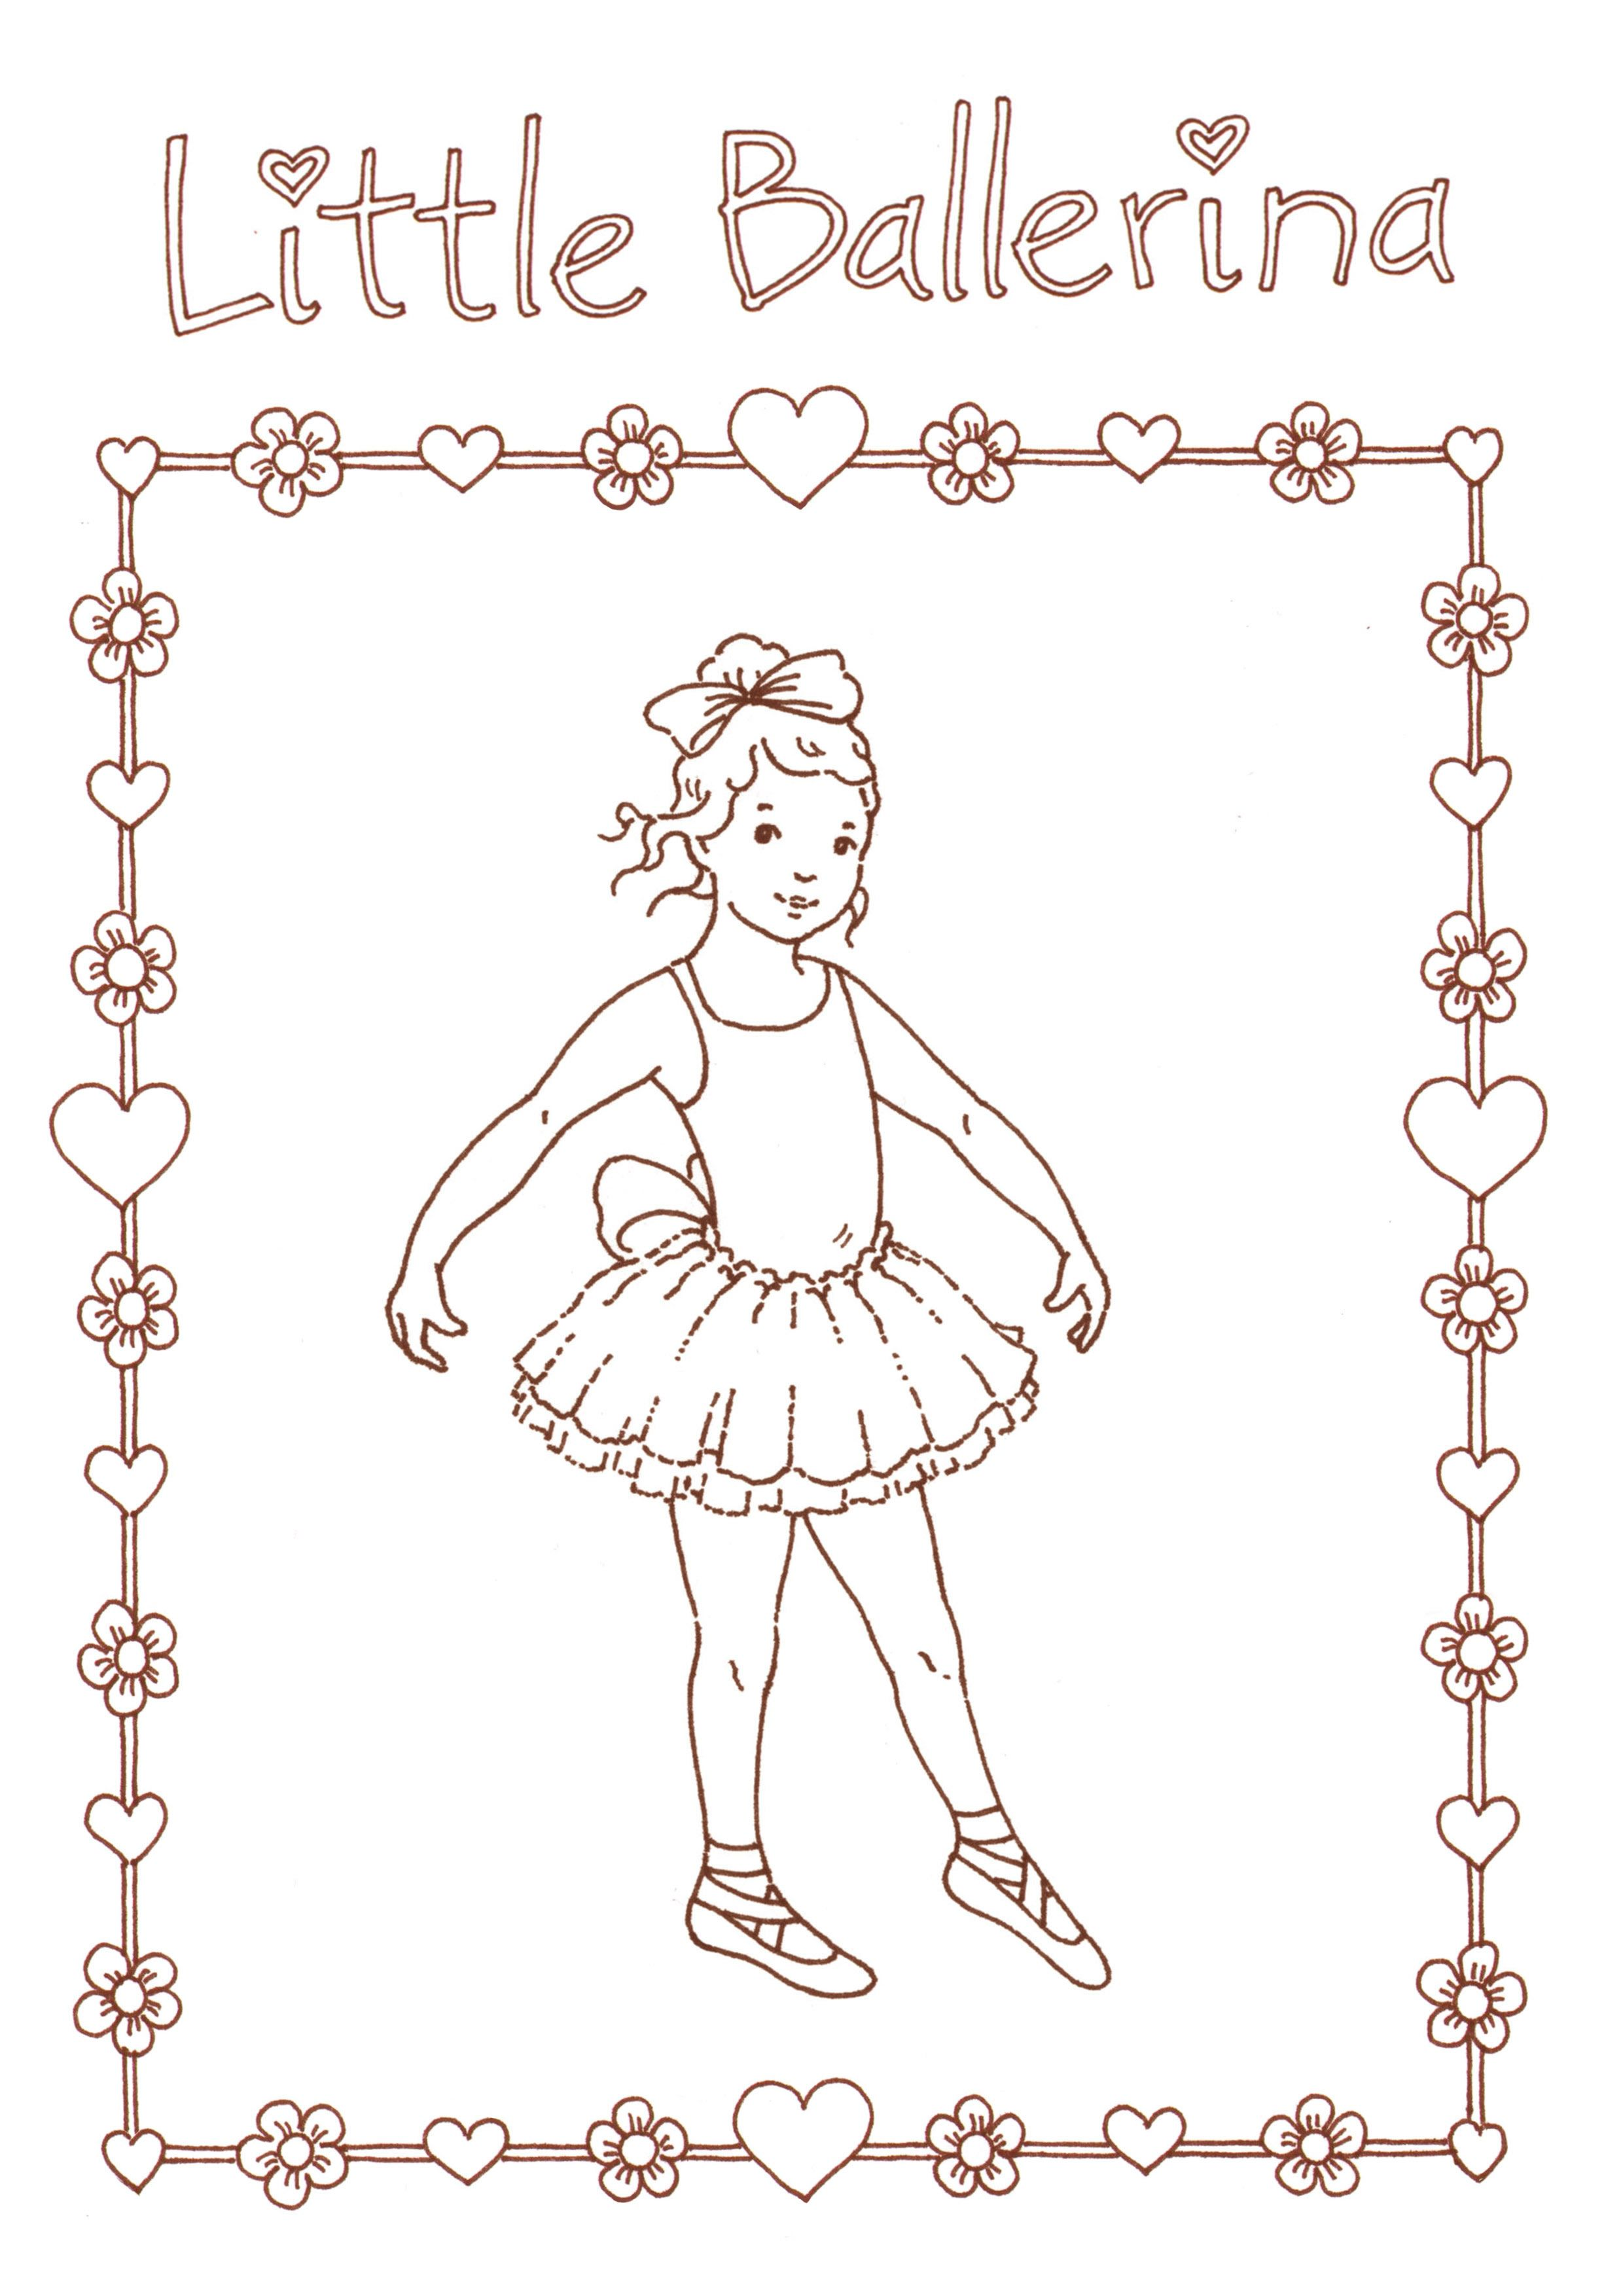 colouring-page2.jpg (2480×3508) | Bale 6 | Pinterest